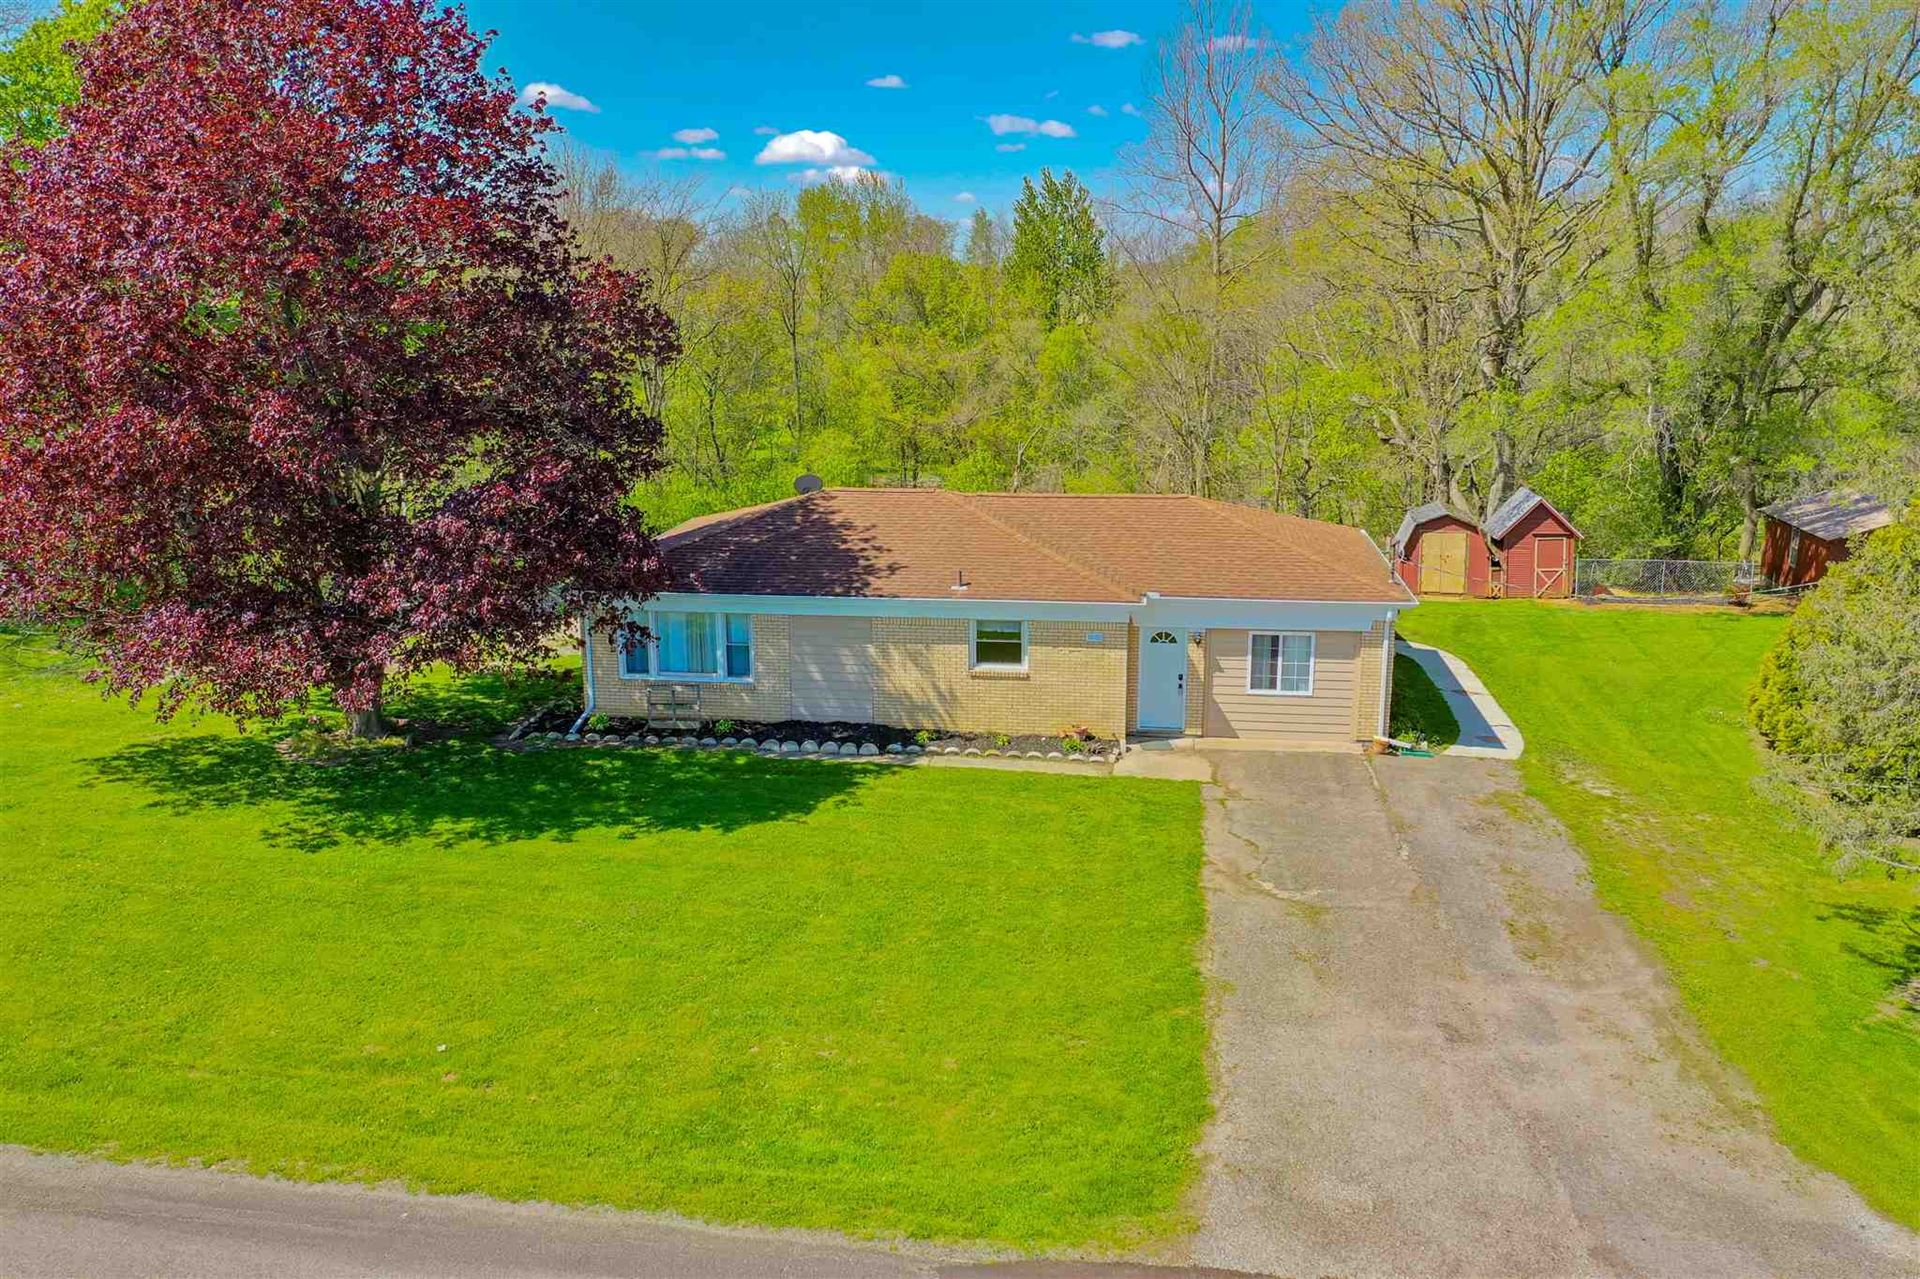 Photo of 2689 E Singer Road, North Manchester, IN 46962 (MLS # 202010898)